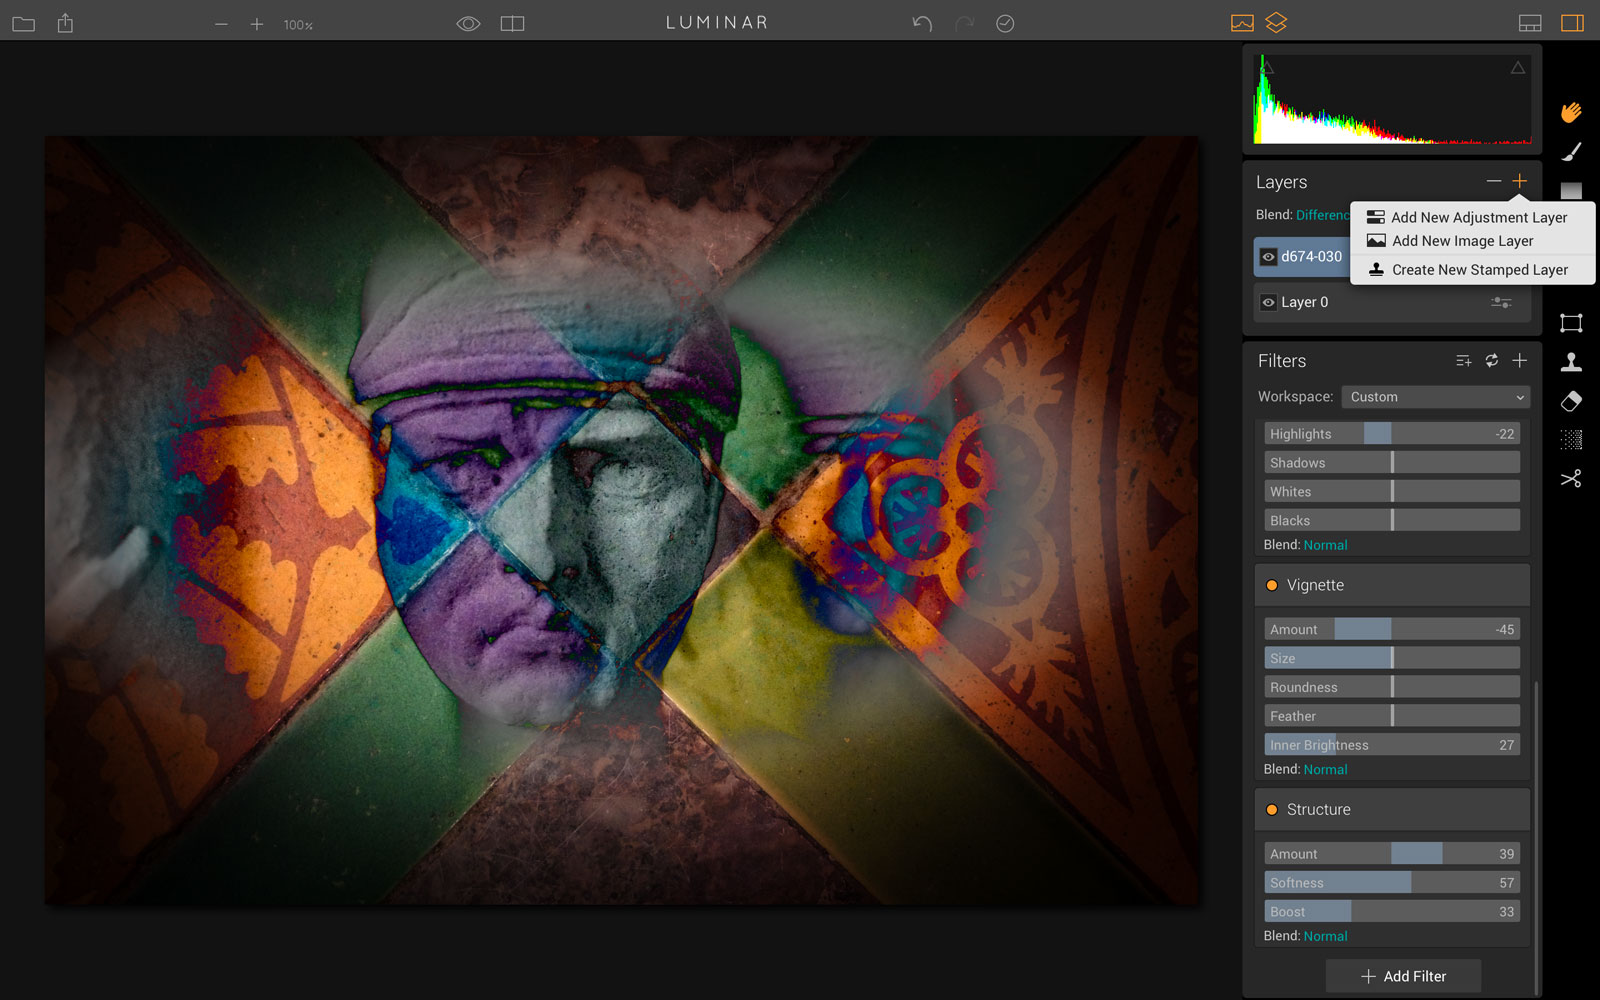 Luminar offers not just adjustment layers but image layers too – you can create composite images using layer masks and blend modes.